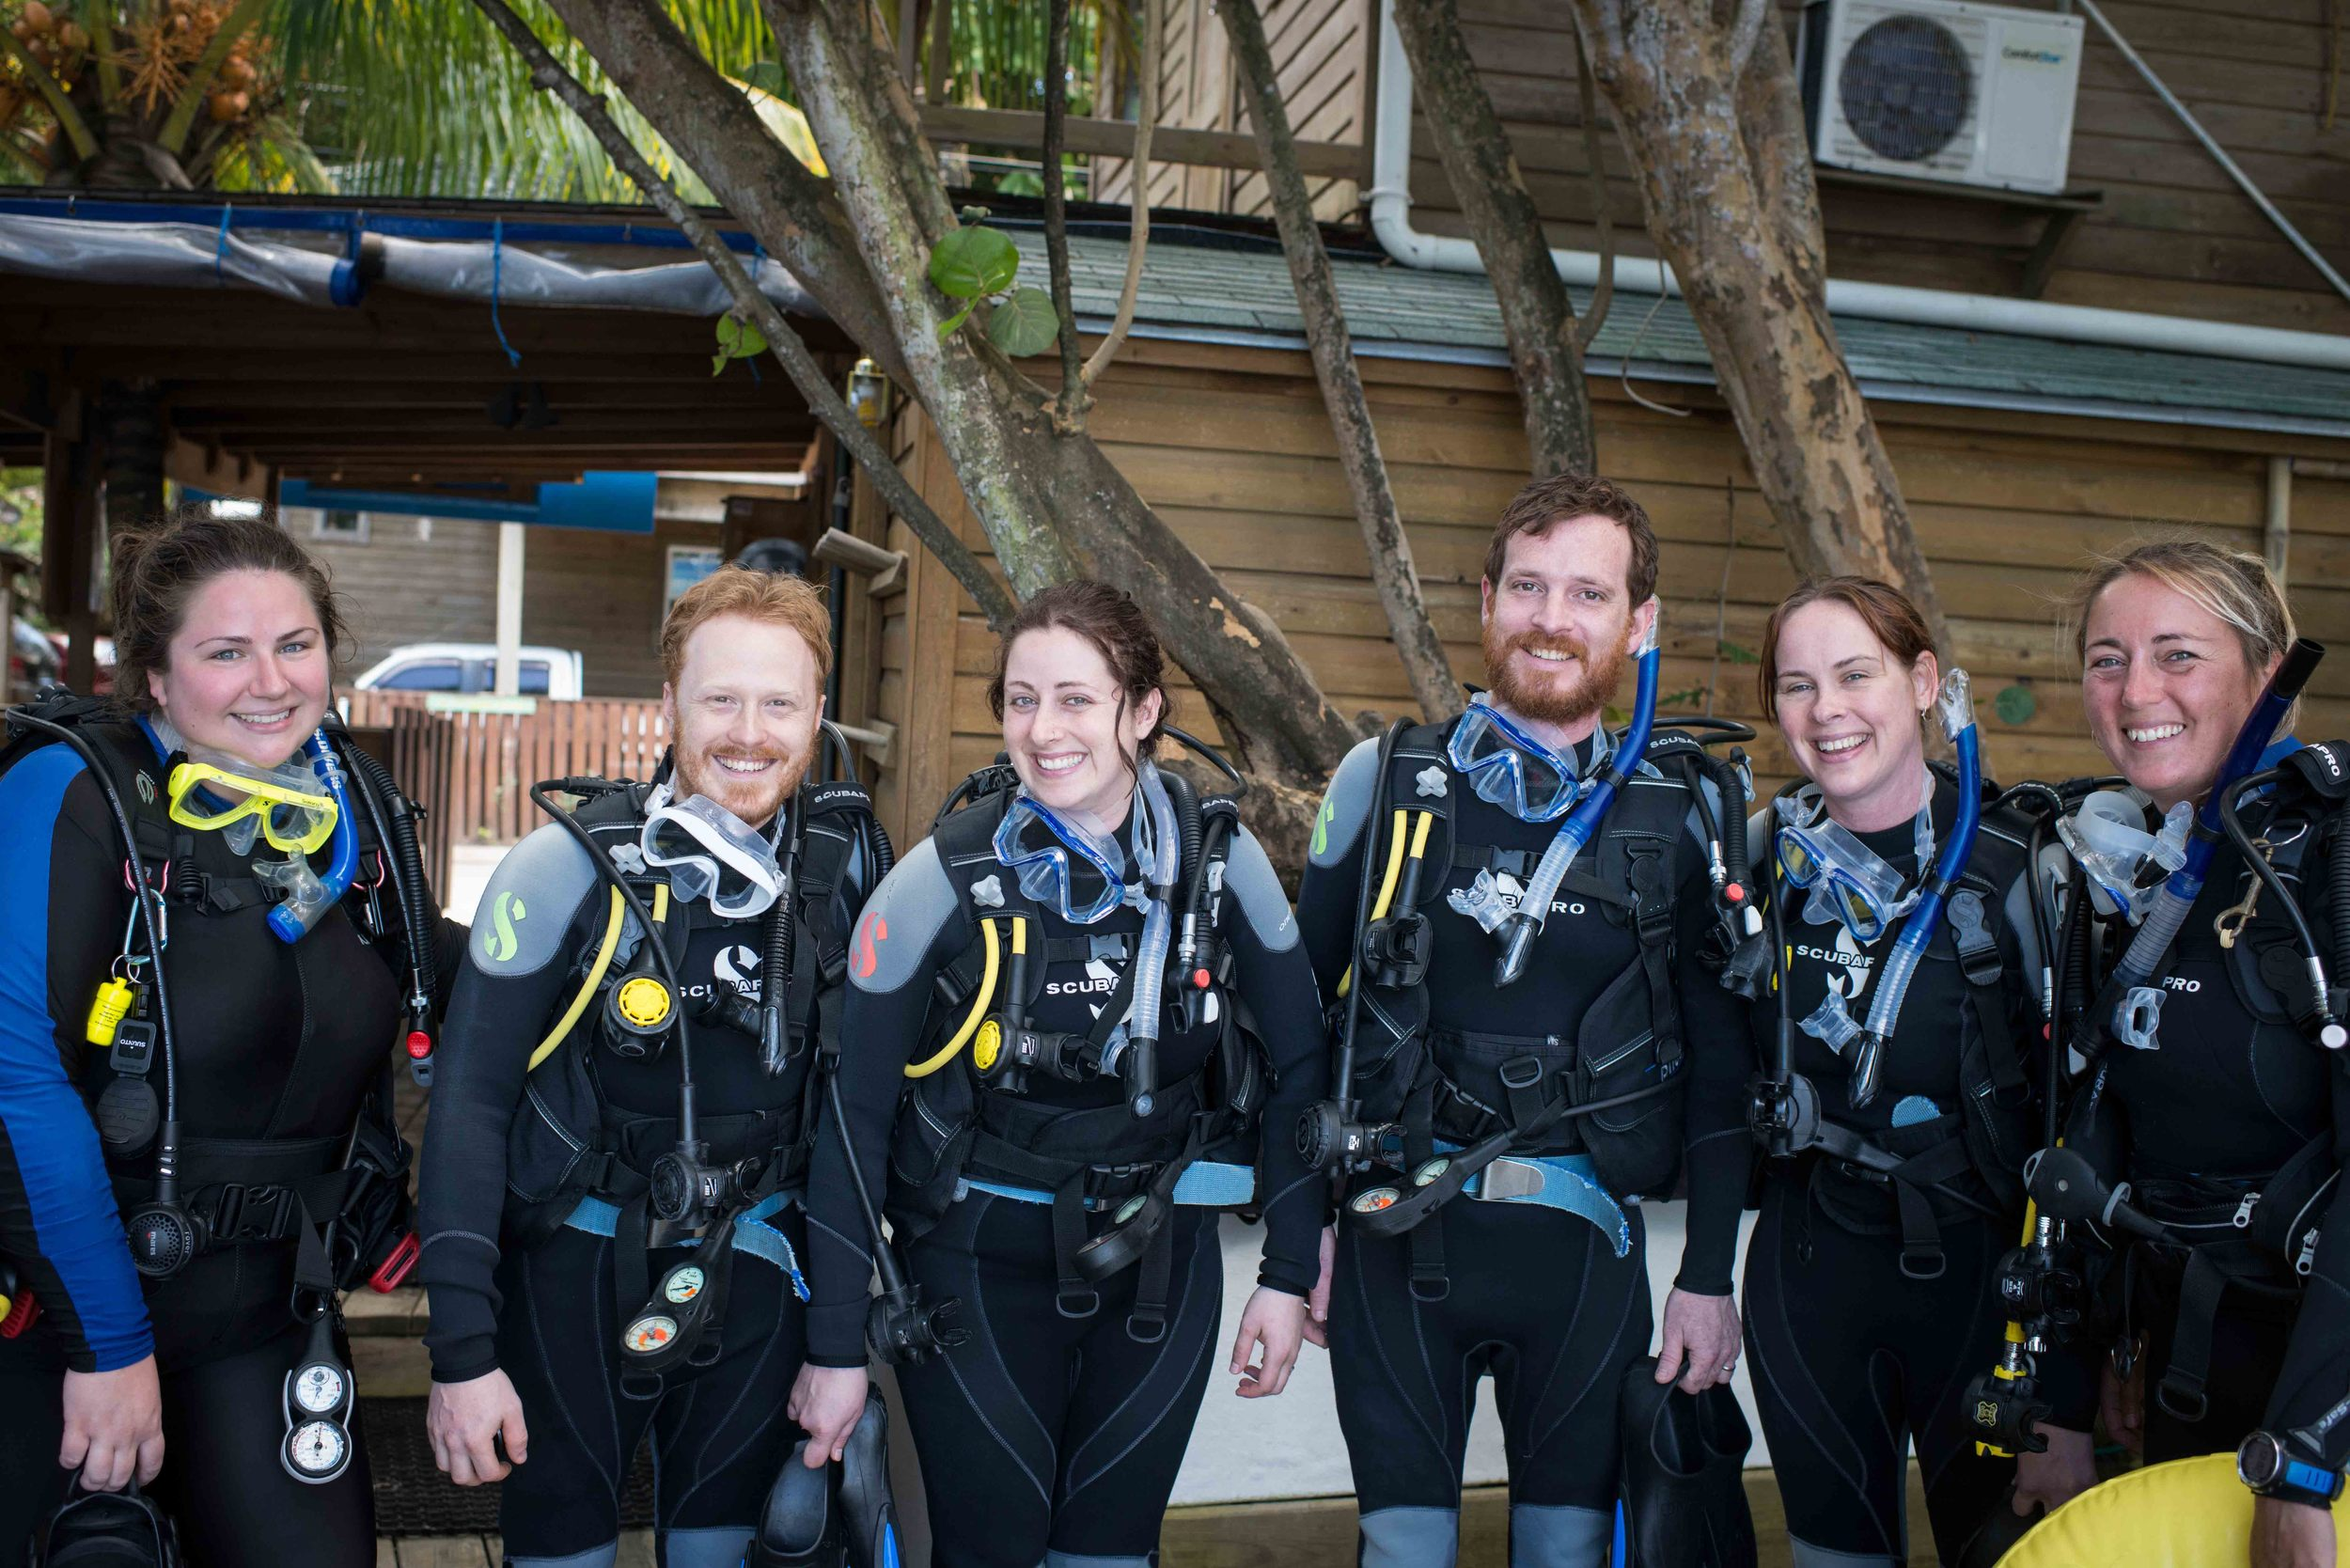 OUR FIRST DIVE!!!